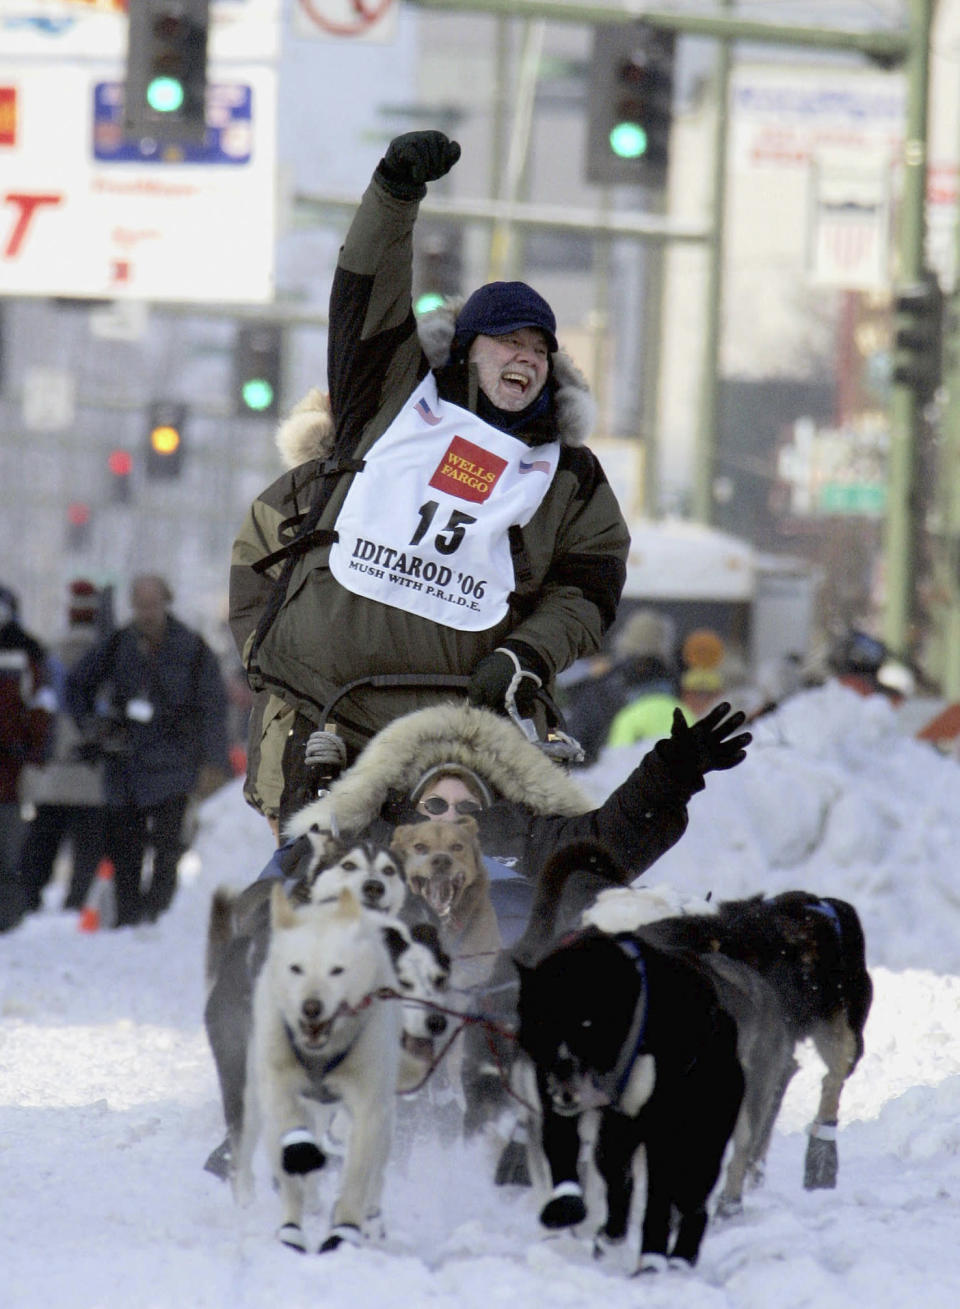 FILE - Author Gary Paulsen cheers he drives his dog team down Fourth Avenue with Carole Markell in the sled, during the ceremonial start of the Iditarod Trail Sled Dog Race on March 4, 2006, in Anchorage, Alaska. Paulsen died Wednesday, Oct. 13, 2021 at age 82. (AP Photo/Al Grillo, File)